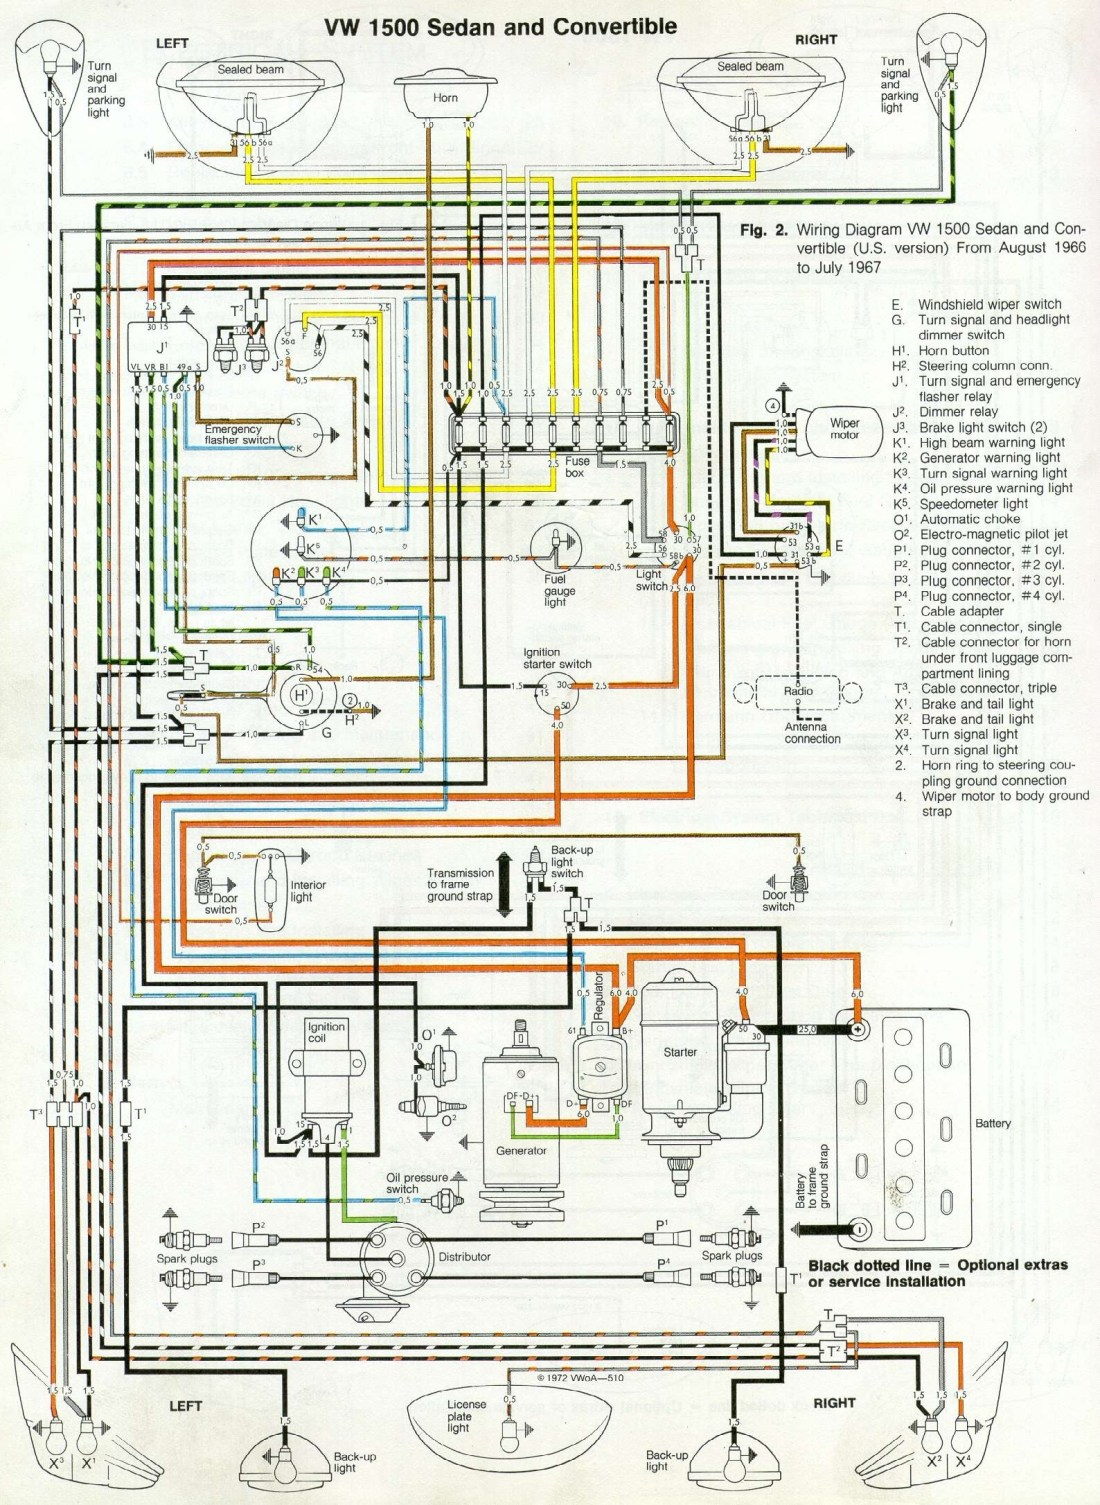 66 and '67 VW Beetle Wiring Diagram | 1967 VW Beetle Vw Beetle Charging System Wiring Diagram on 1963 vw wiring diagram, vw beetle fuel injection diagram, 1999 vw passat wiring diagram, 1967 vw wiring diagram, 1974 vw engine diagram, alfa romeo spider wiring diagram, vw rabbit wiring-diagram, vw turn signal wiring diagram, vw distributor diagram, fiat uno wiring diagram, vw buggy wiring-diagram, volkswagen fuel diagram, 1973 vw wiring diagram, porsche cayenne wiring diagram, vw starter wiring diagram, vw type 2 wiring diagram, vw beetle engine diagram, 68 vw wiring diagram, type 3 wiring diagram, vw light switch wiring,